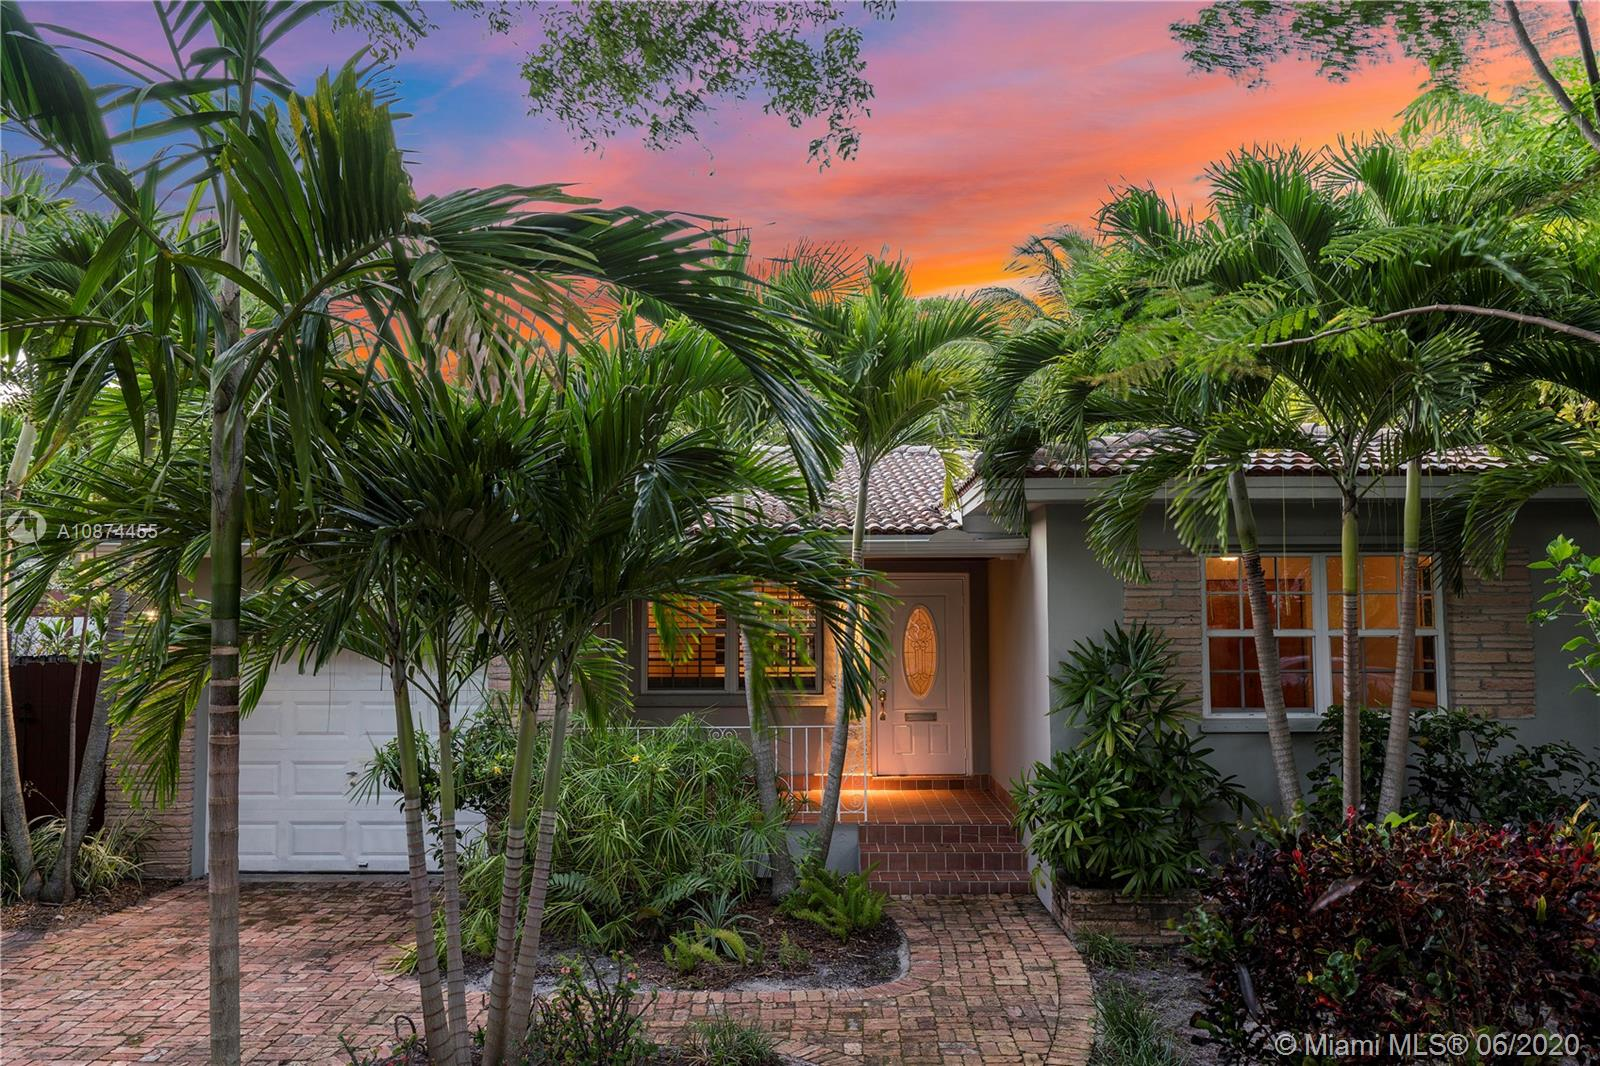 Charming house in super trendy and desirable Belle Meade gated community.  Home is open & spacious w/tons of natural light.  Great floor plan. 2 bedroom - 2 bath home. Open living/dining room to updated kitchen.  Great florida room that leads to an amazing covered backyard.  Lush landscaping throughout. Beautiful pond w/waterfall that makes this a zen retreat.  Home exudes charm and it's ideal for entertainment.  Master bedroom has it's own private deck.  One car garage.  Make this your dream home. A must see!